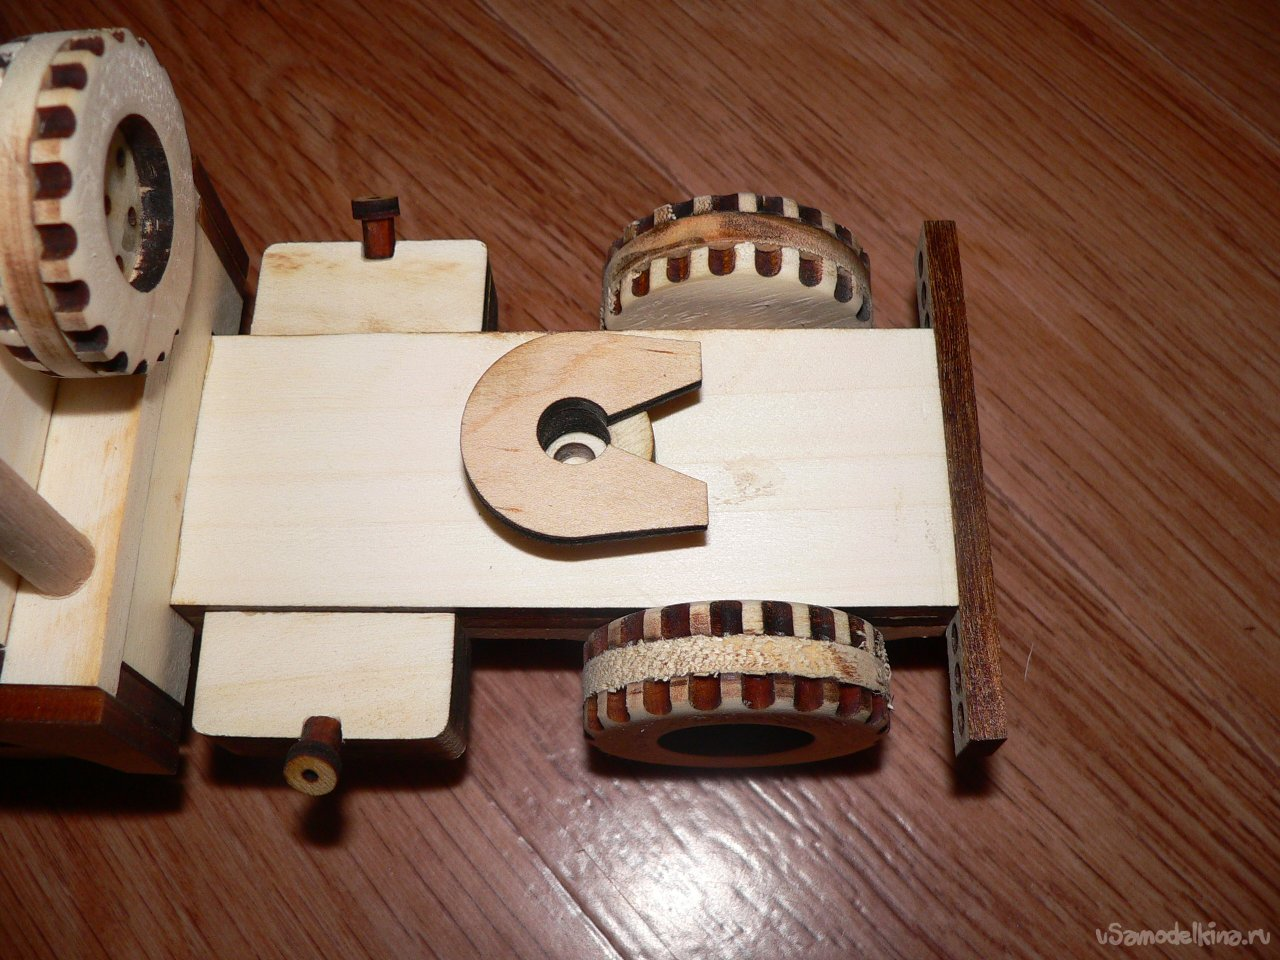 Toy timber truck made of wood